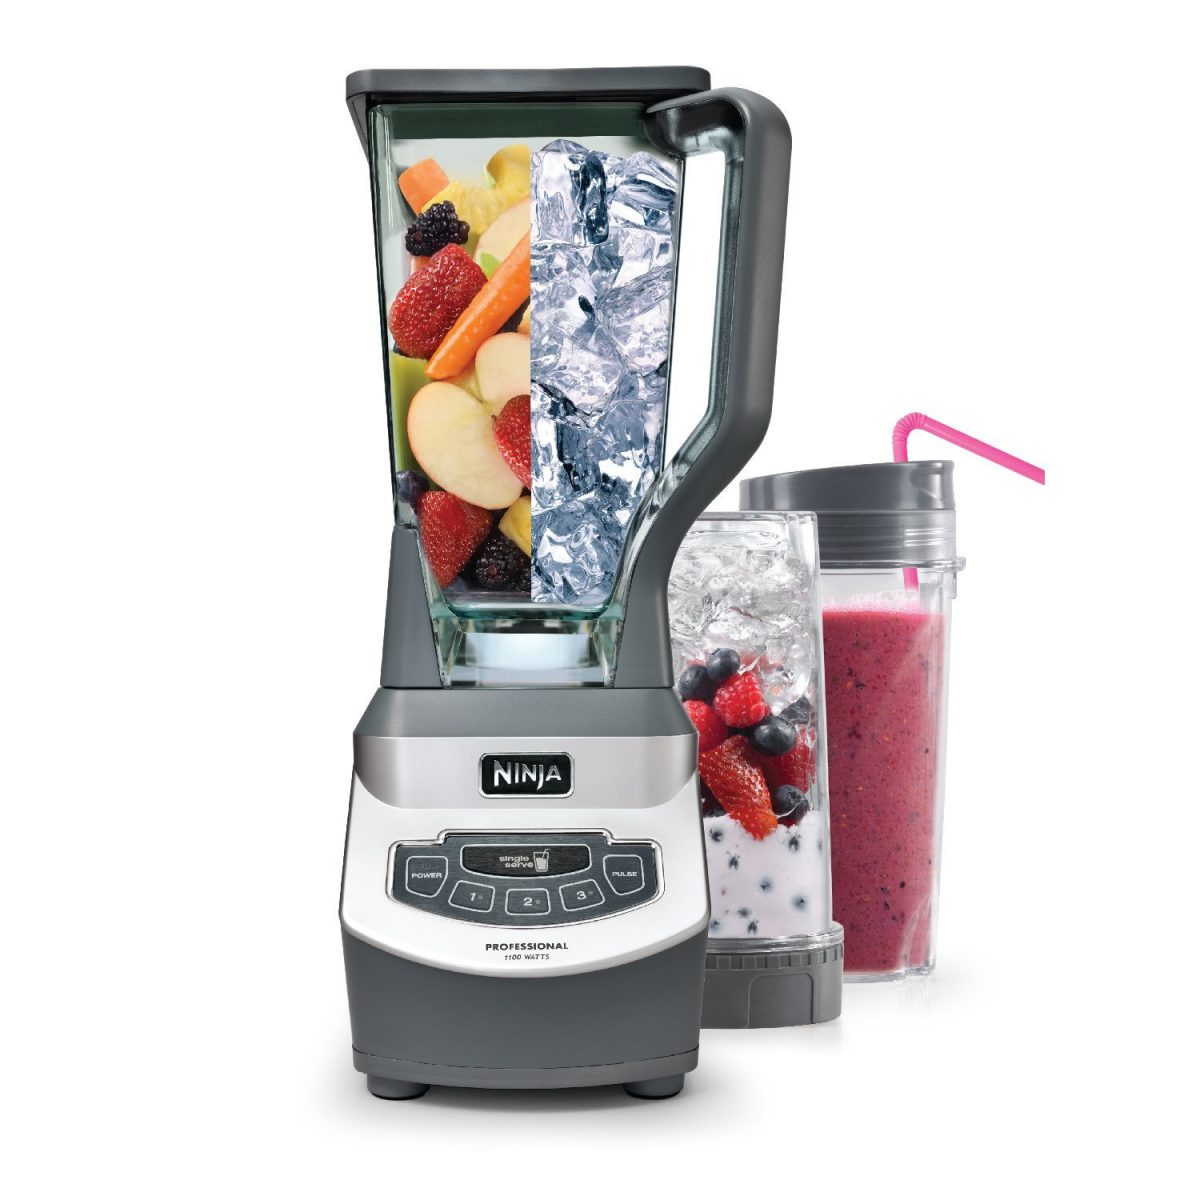 Make Smoothies And Fruit Shakes With Professional Ultra-Speed Blenders